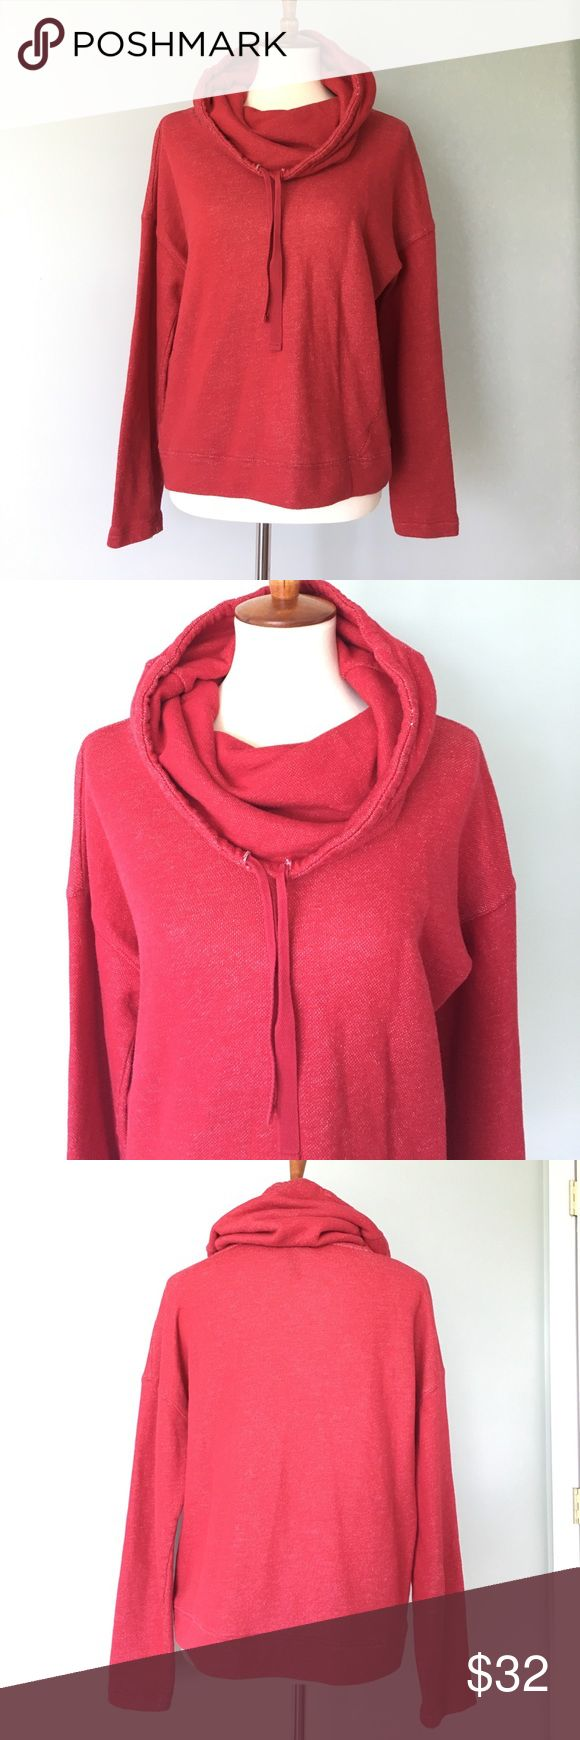 Ralph Lauren Sweatshirt super soft Red Large LRL Lauren Jeans Co. Ralph Lauren Cotton blend red sweatshirt in Large. Slouchy neck with drawstrings. In flawless condition. You can wear this all year, chilly summer nights, fall Tailgates and Christmas morning. Lauren Ralph Lauren Tops Sweatshirts & Hoodies